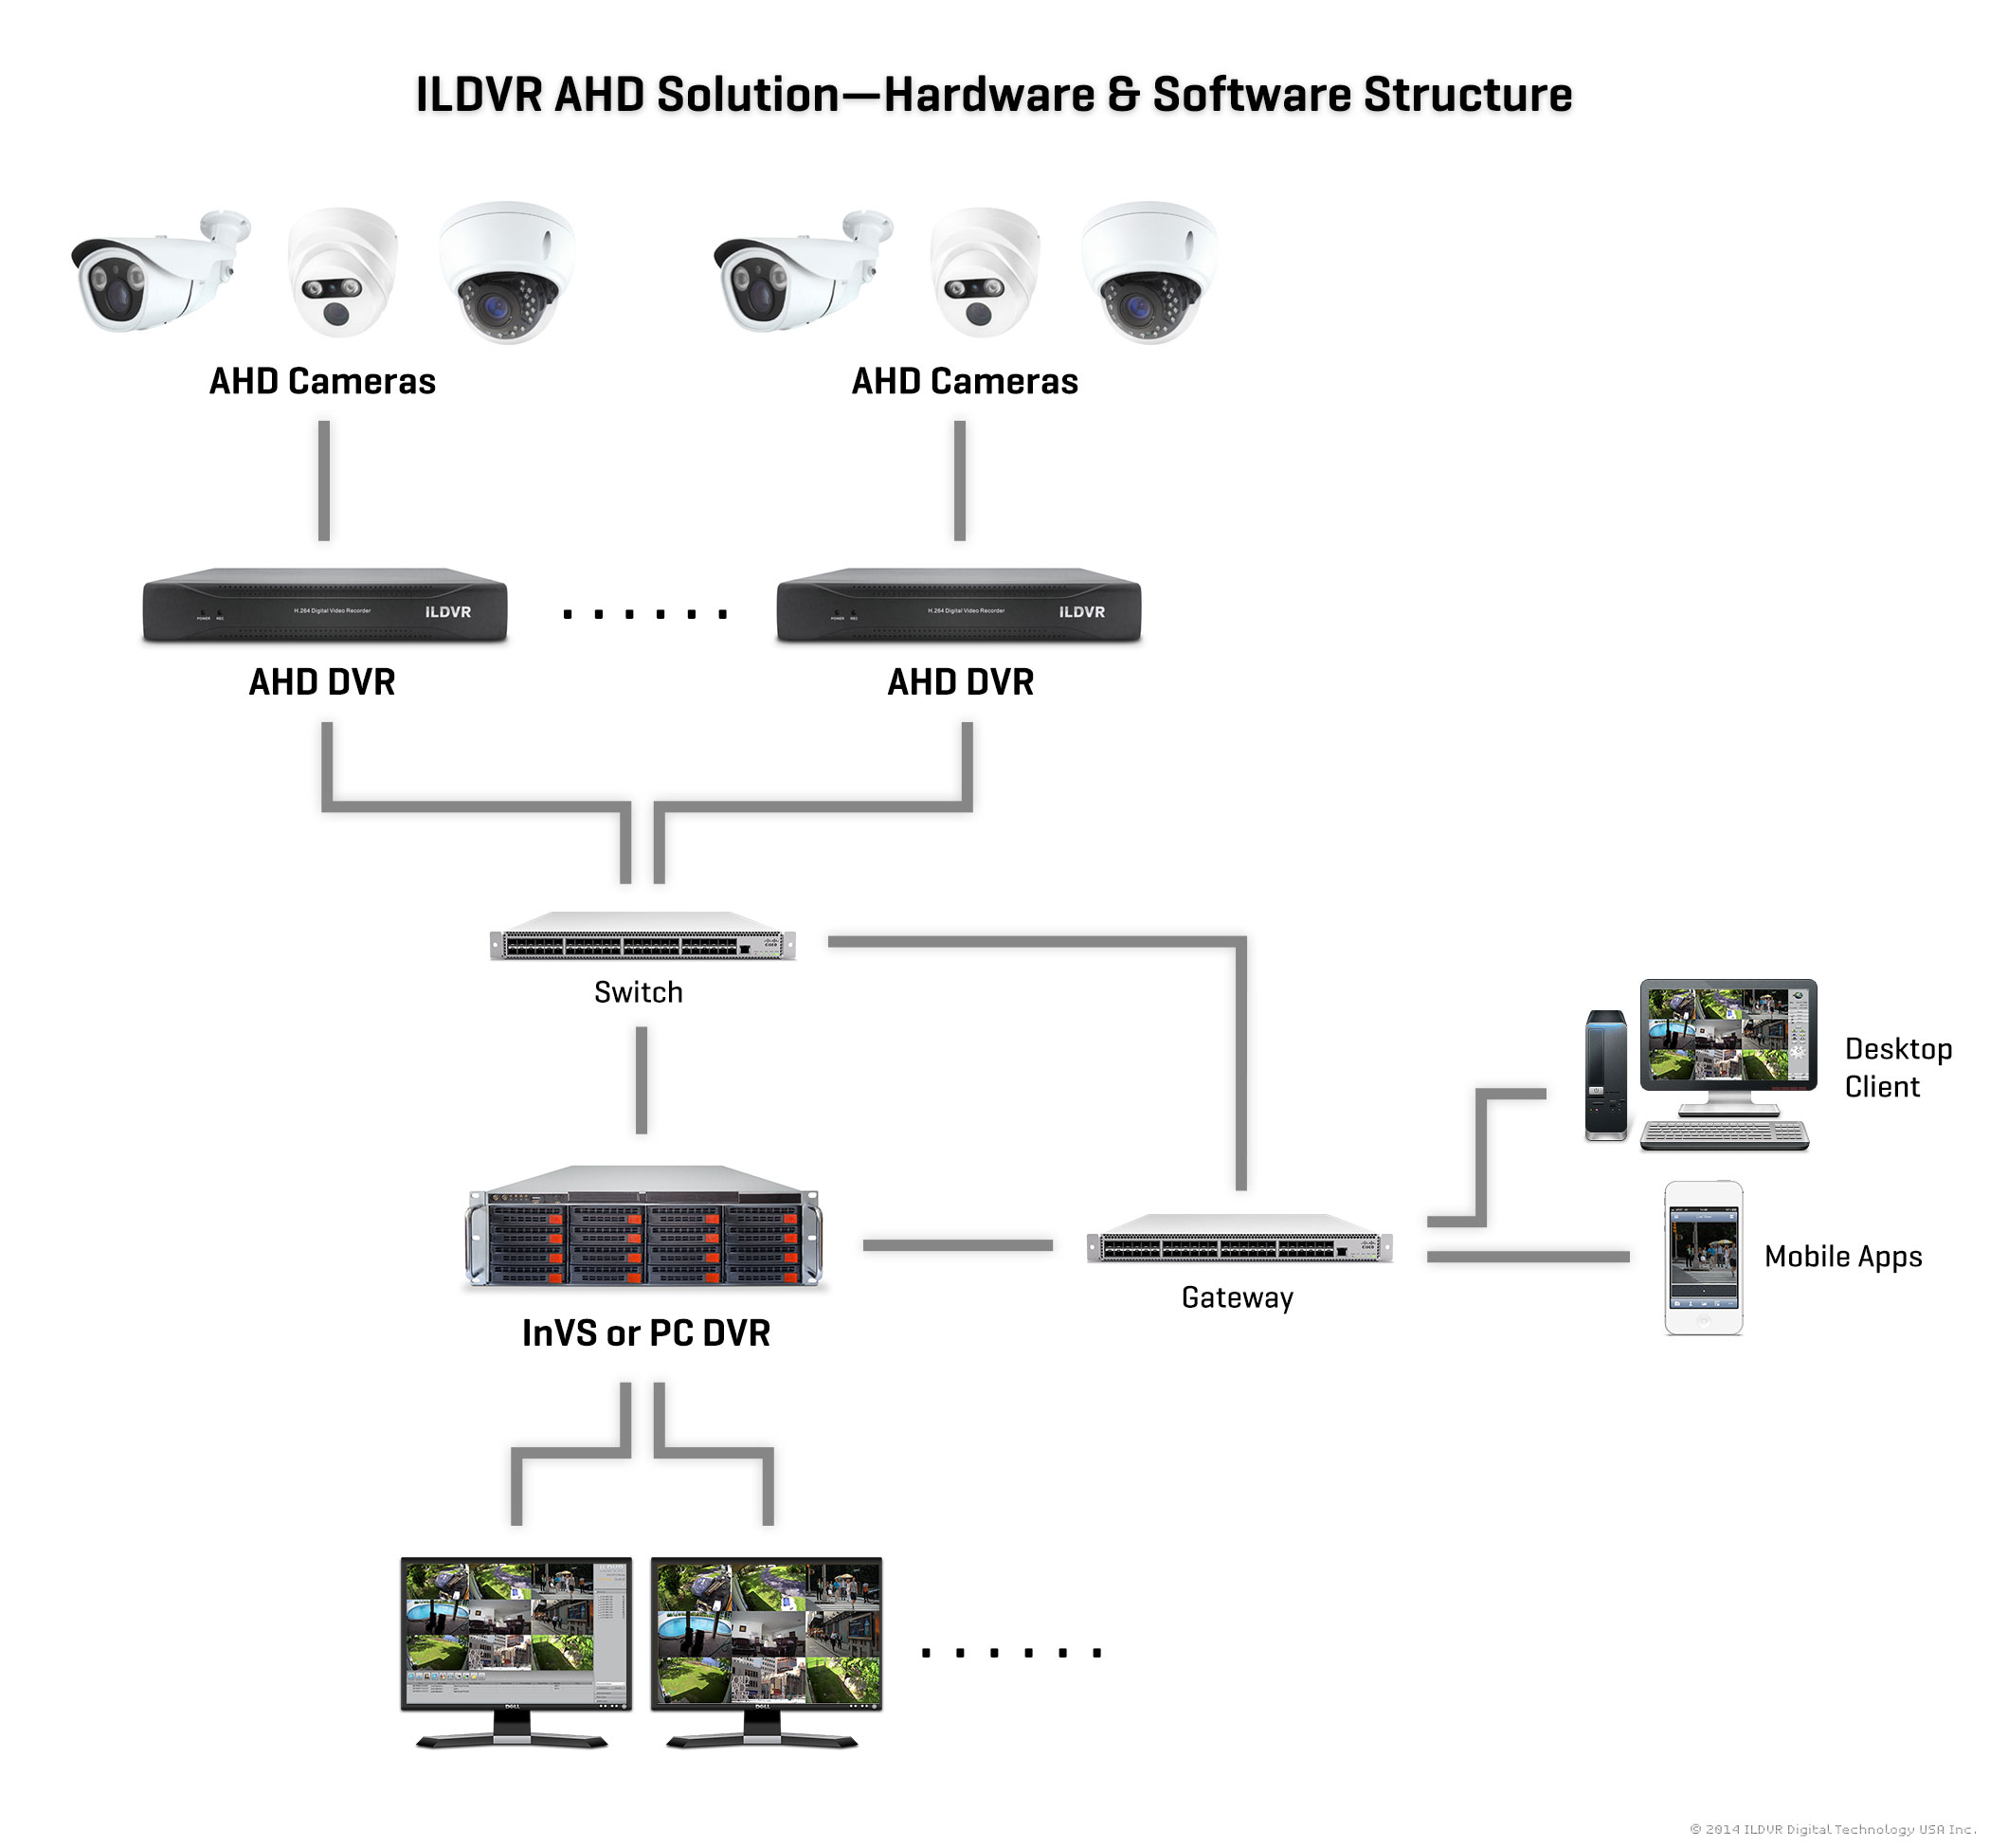 ILDVR AHD Solution Illustration